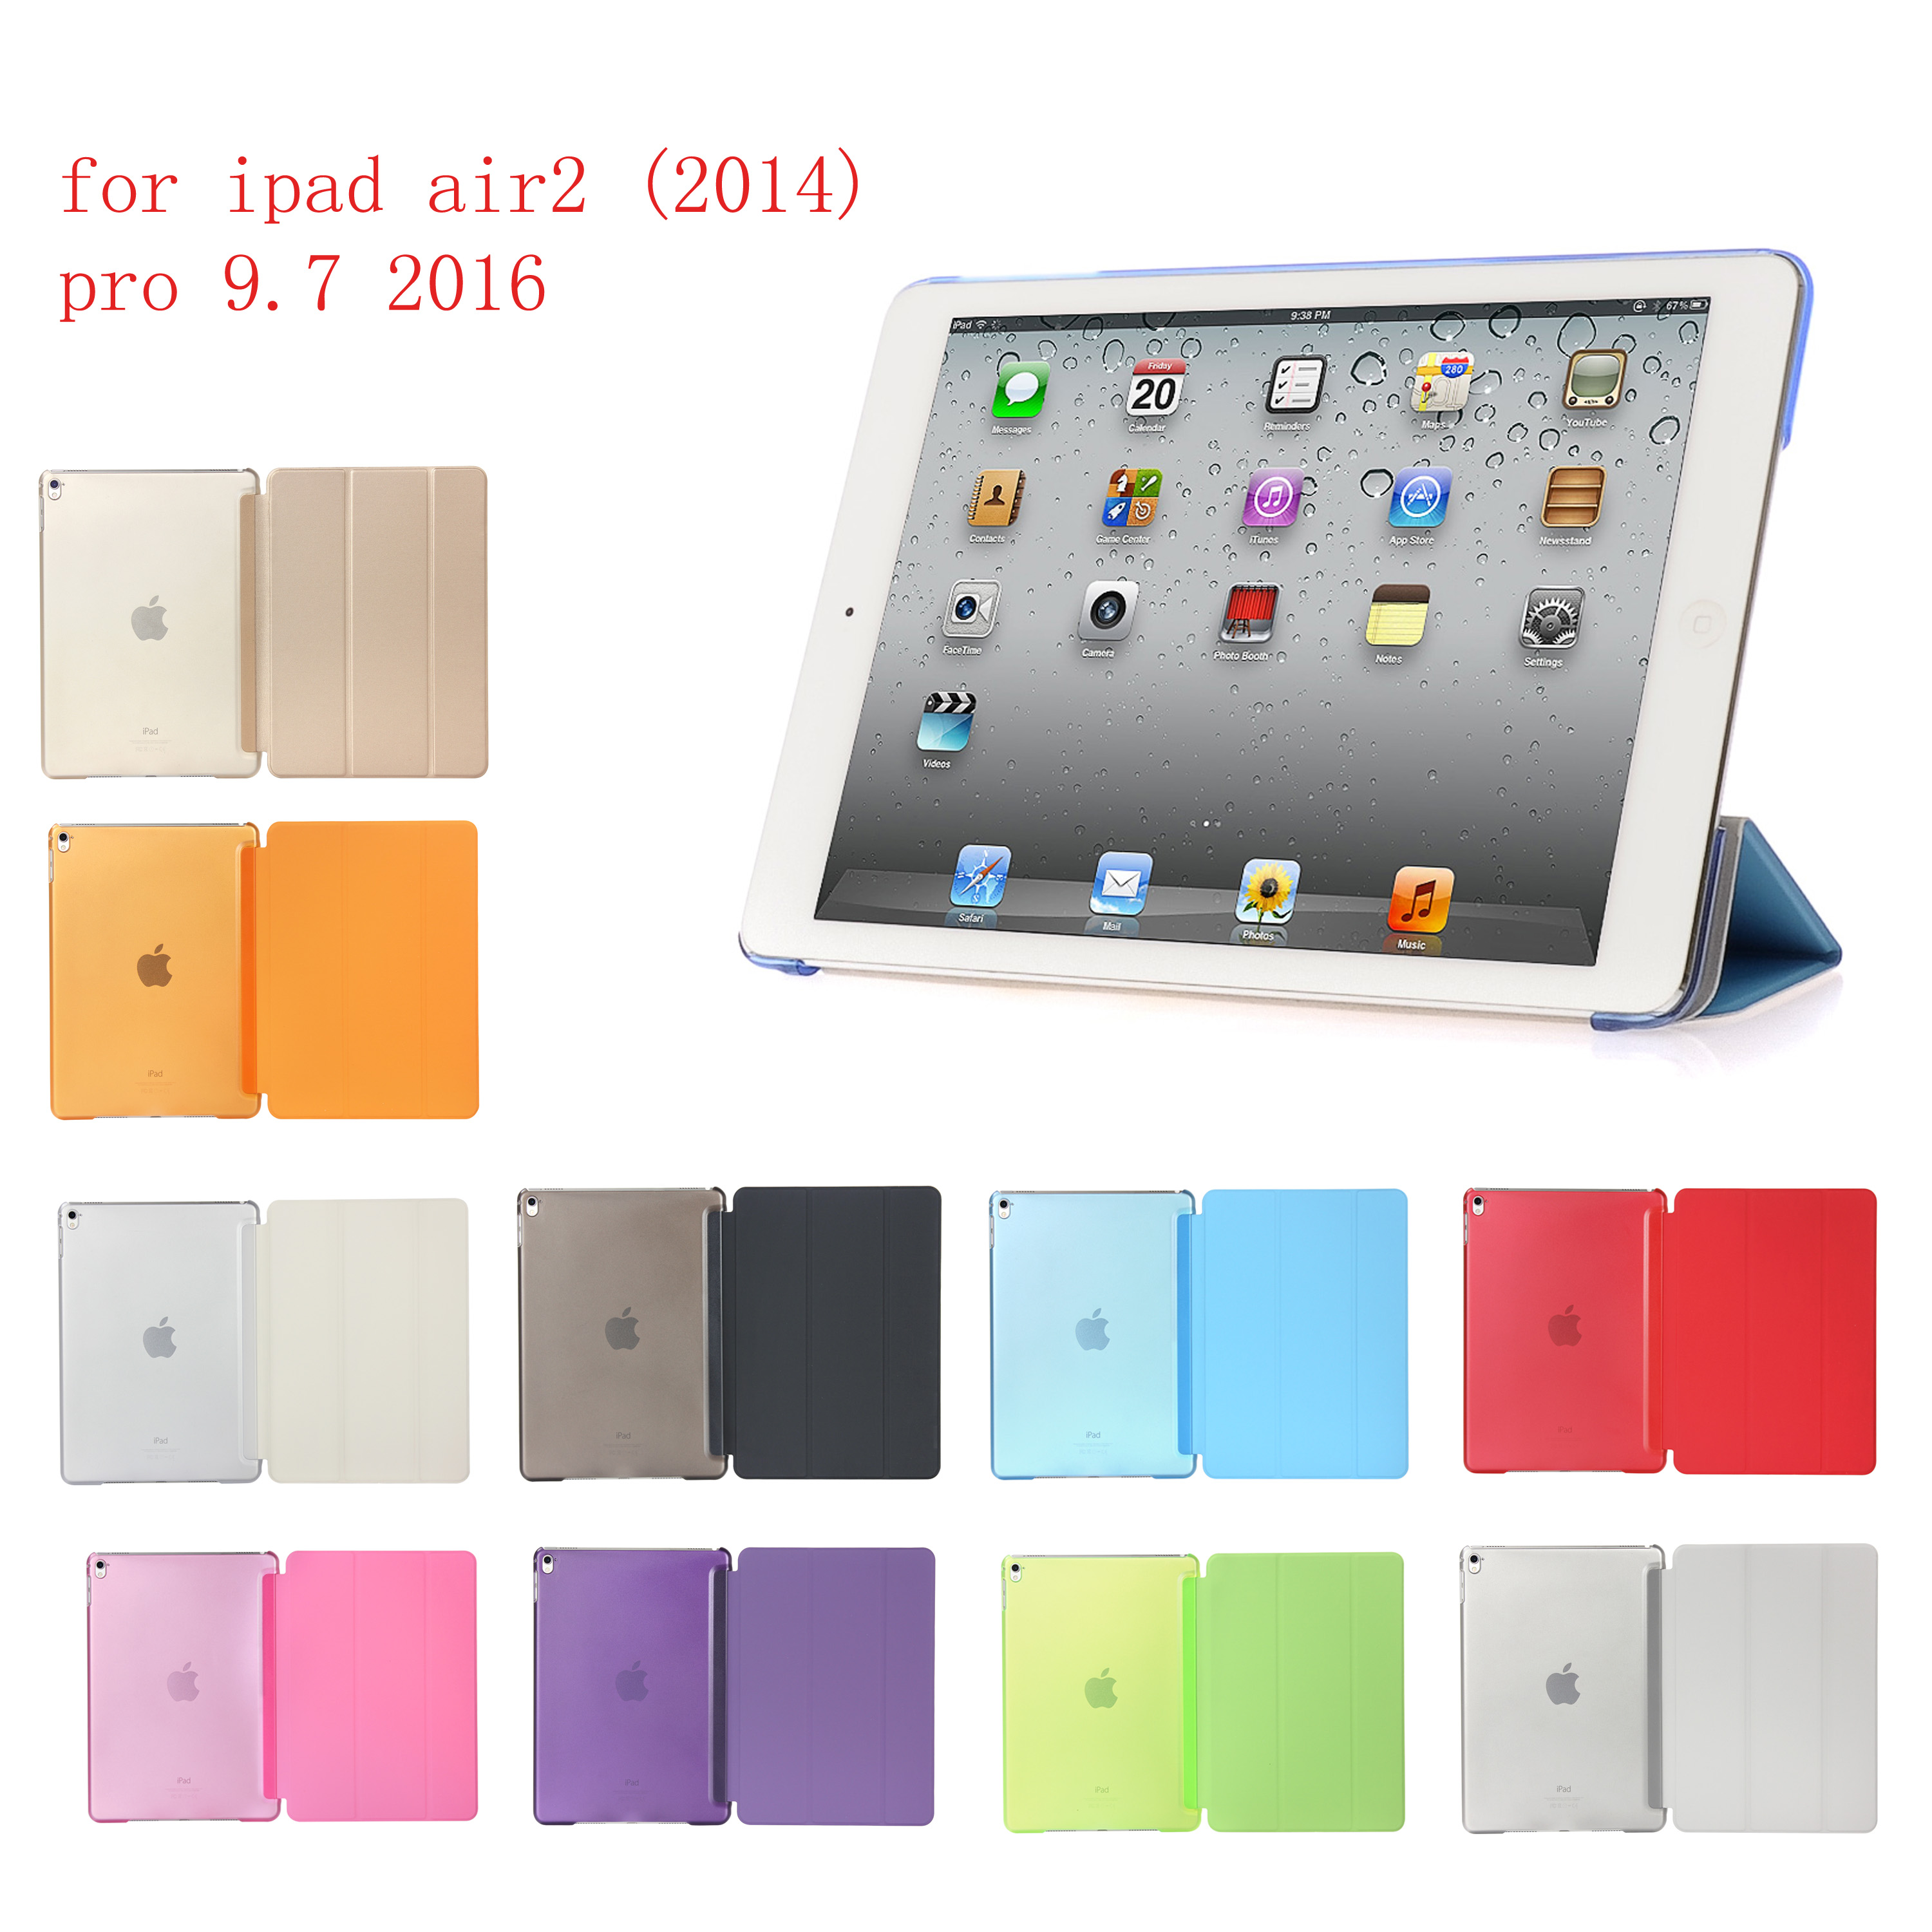 Case For Ipad Air 2 Pro 9.7(2016) PU Ultra Slim Magnet Sleep Wake Up Smart Cover Shell For IPad A1566 A1567 A1673 A1674 A1675